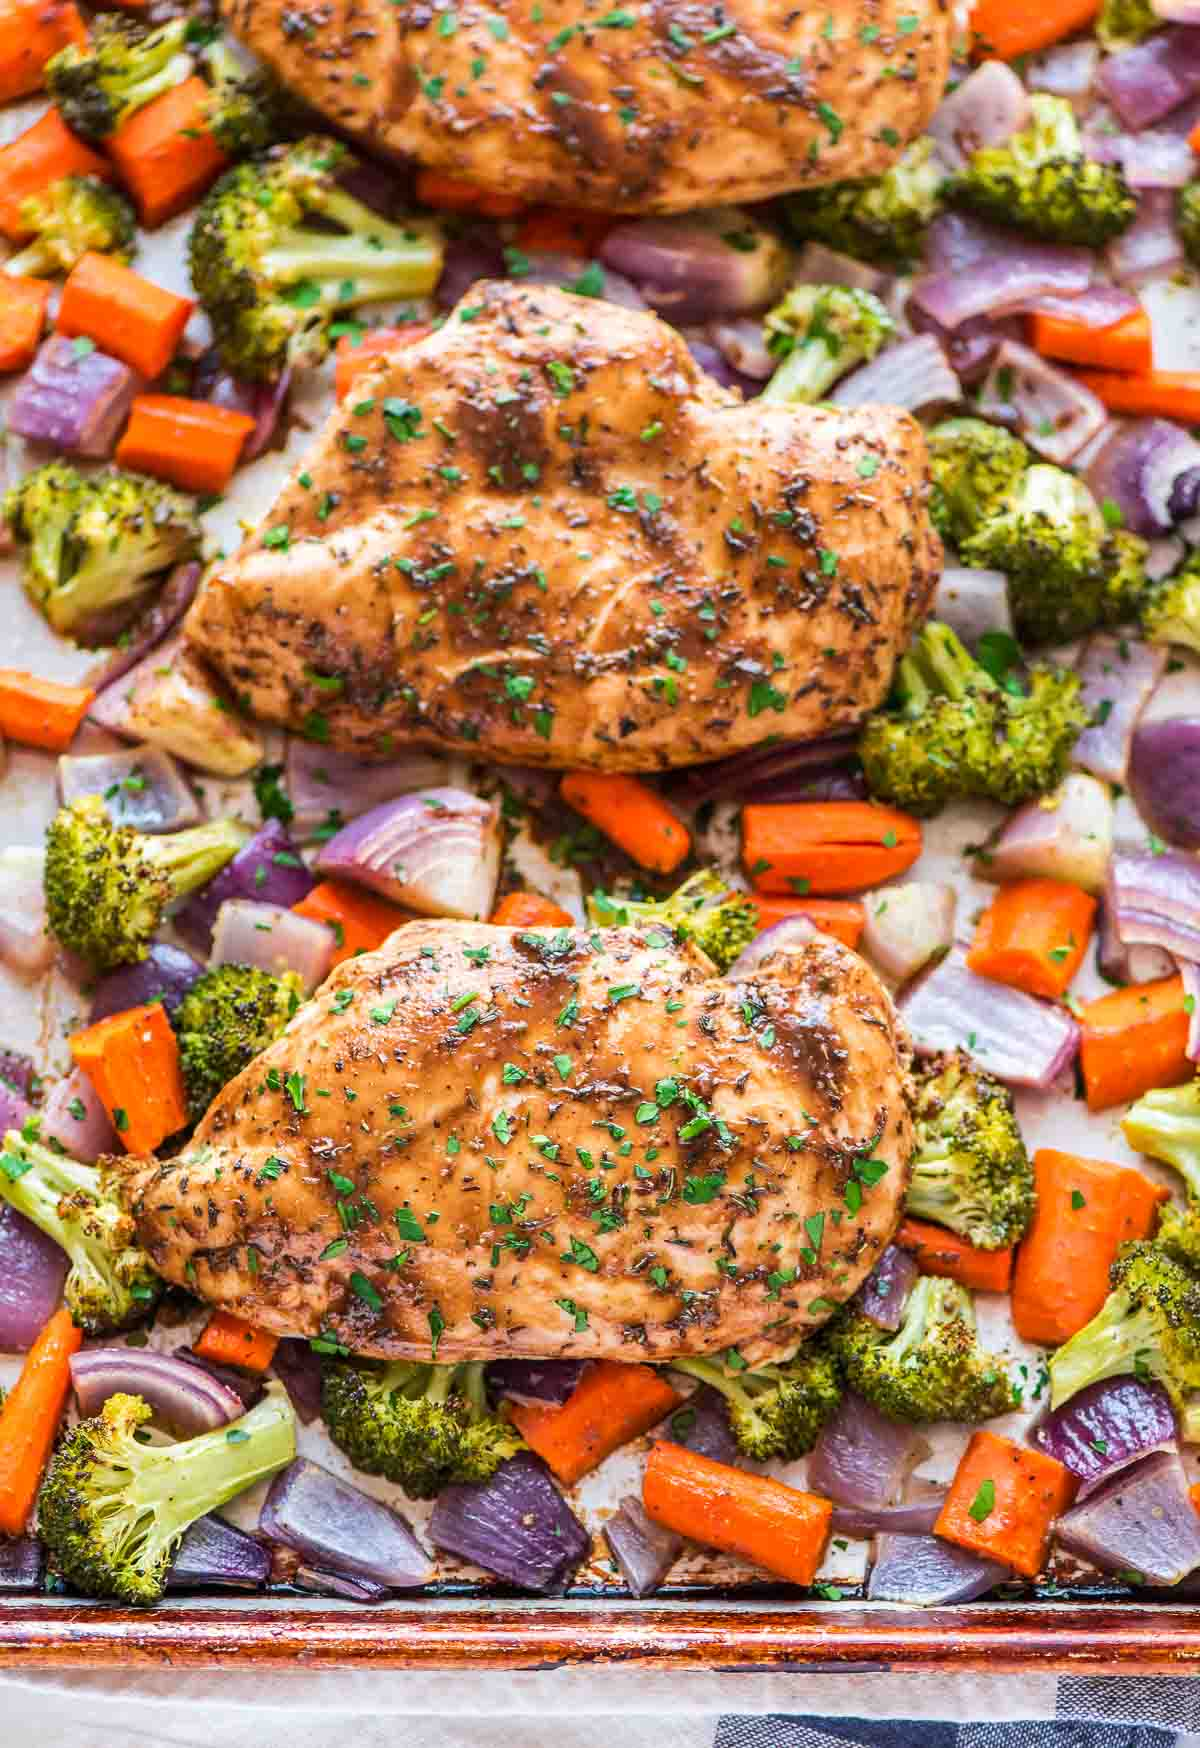 Sheet Pan Maple Dijon Chicken and Vegetables – an easy and healthy dinner recipe that cooks on ONE pan. Juicy, tender, and packed with amazing maple Dijon flavor. You will LOVE this recipe! Recipe at wellplated.com | @wellplated